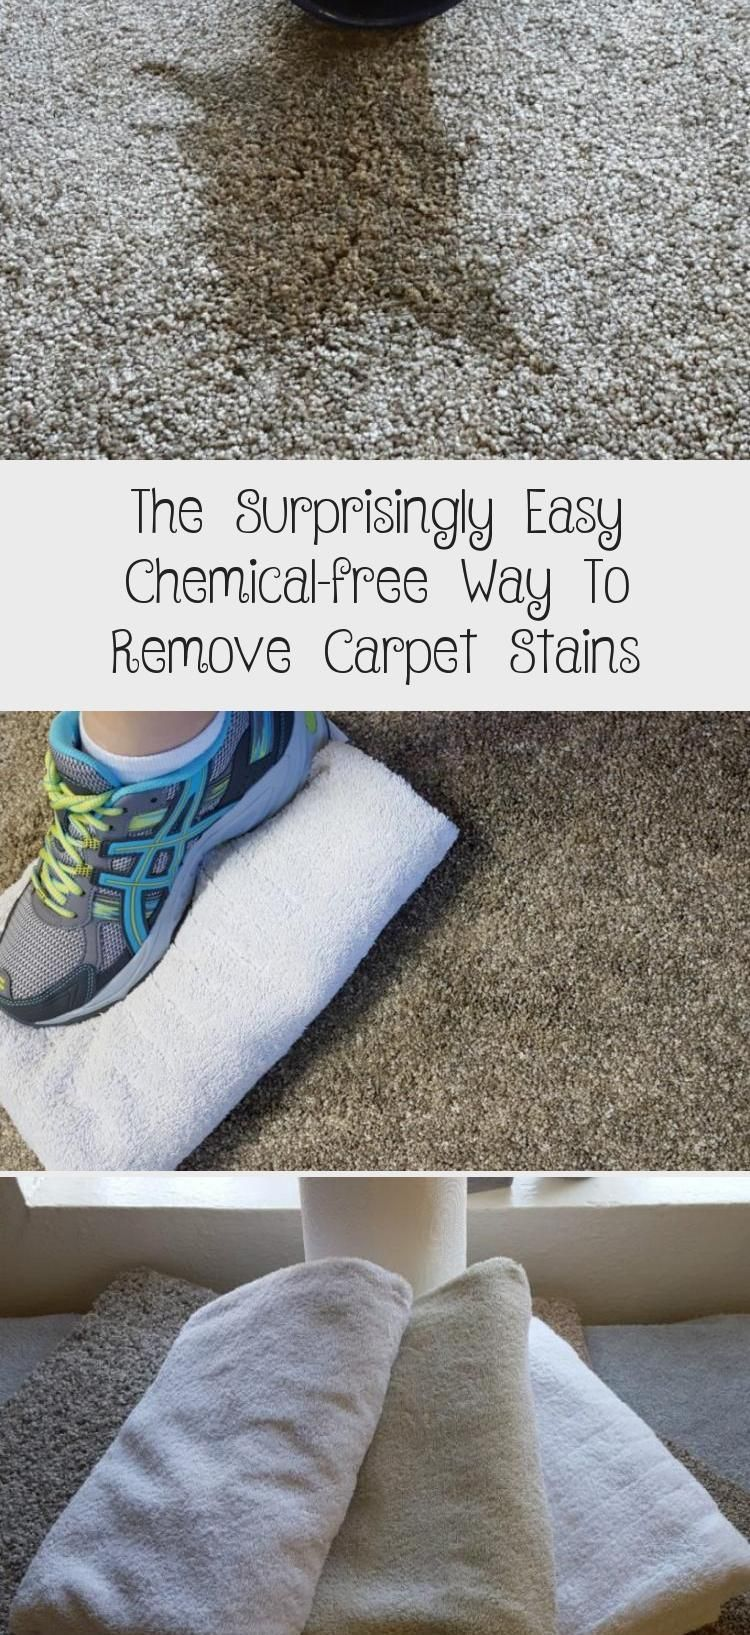 Spot Cleaner | Carpet Stain Removal | DIY Carpet stain remover | chemical-free n... ,  #Carpet #carpetstainremover #Chemicalfree #Cleaner #DIY #Removal #Remover #Spot #Stain